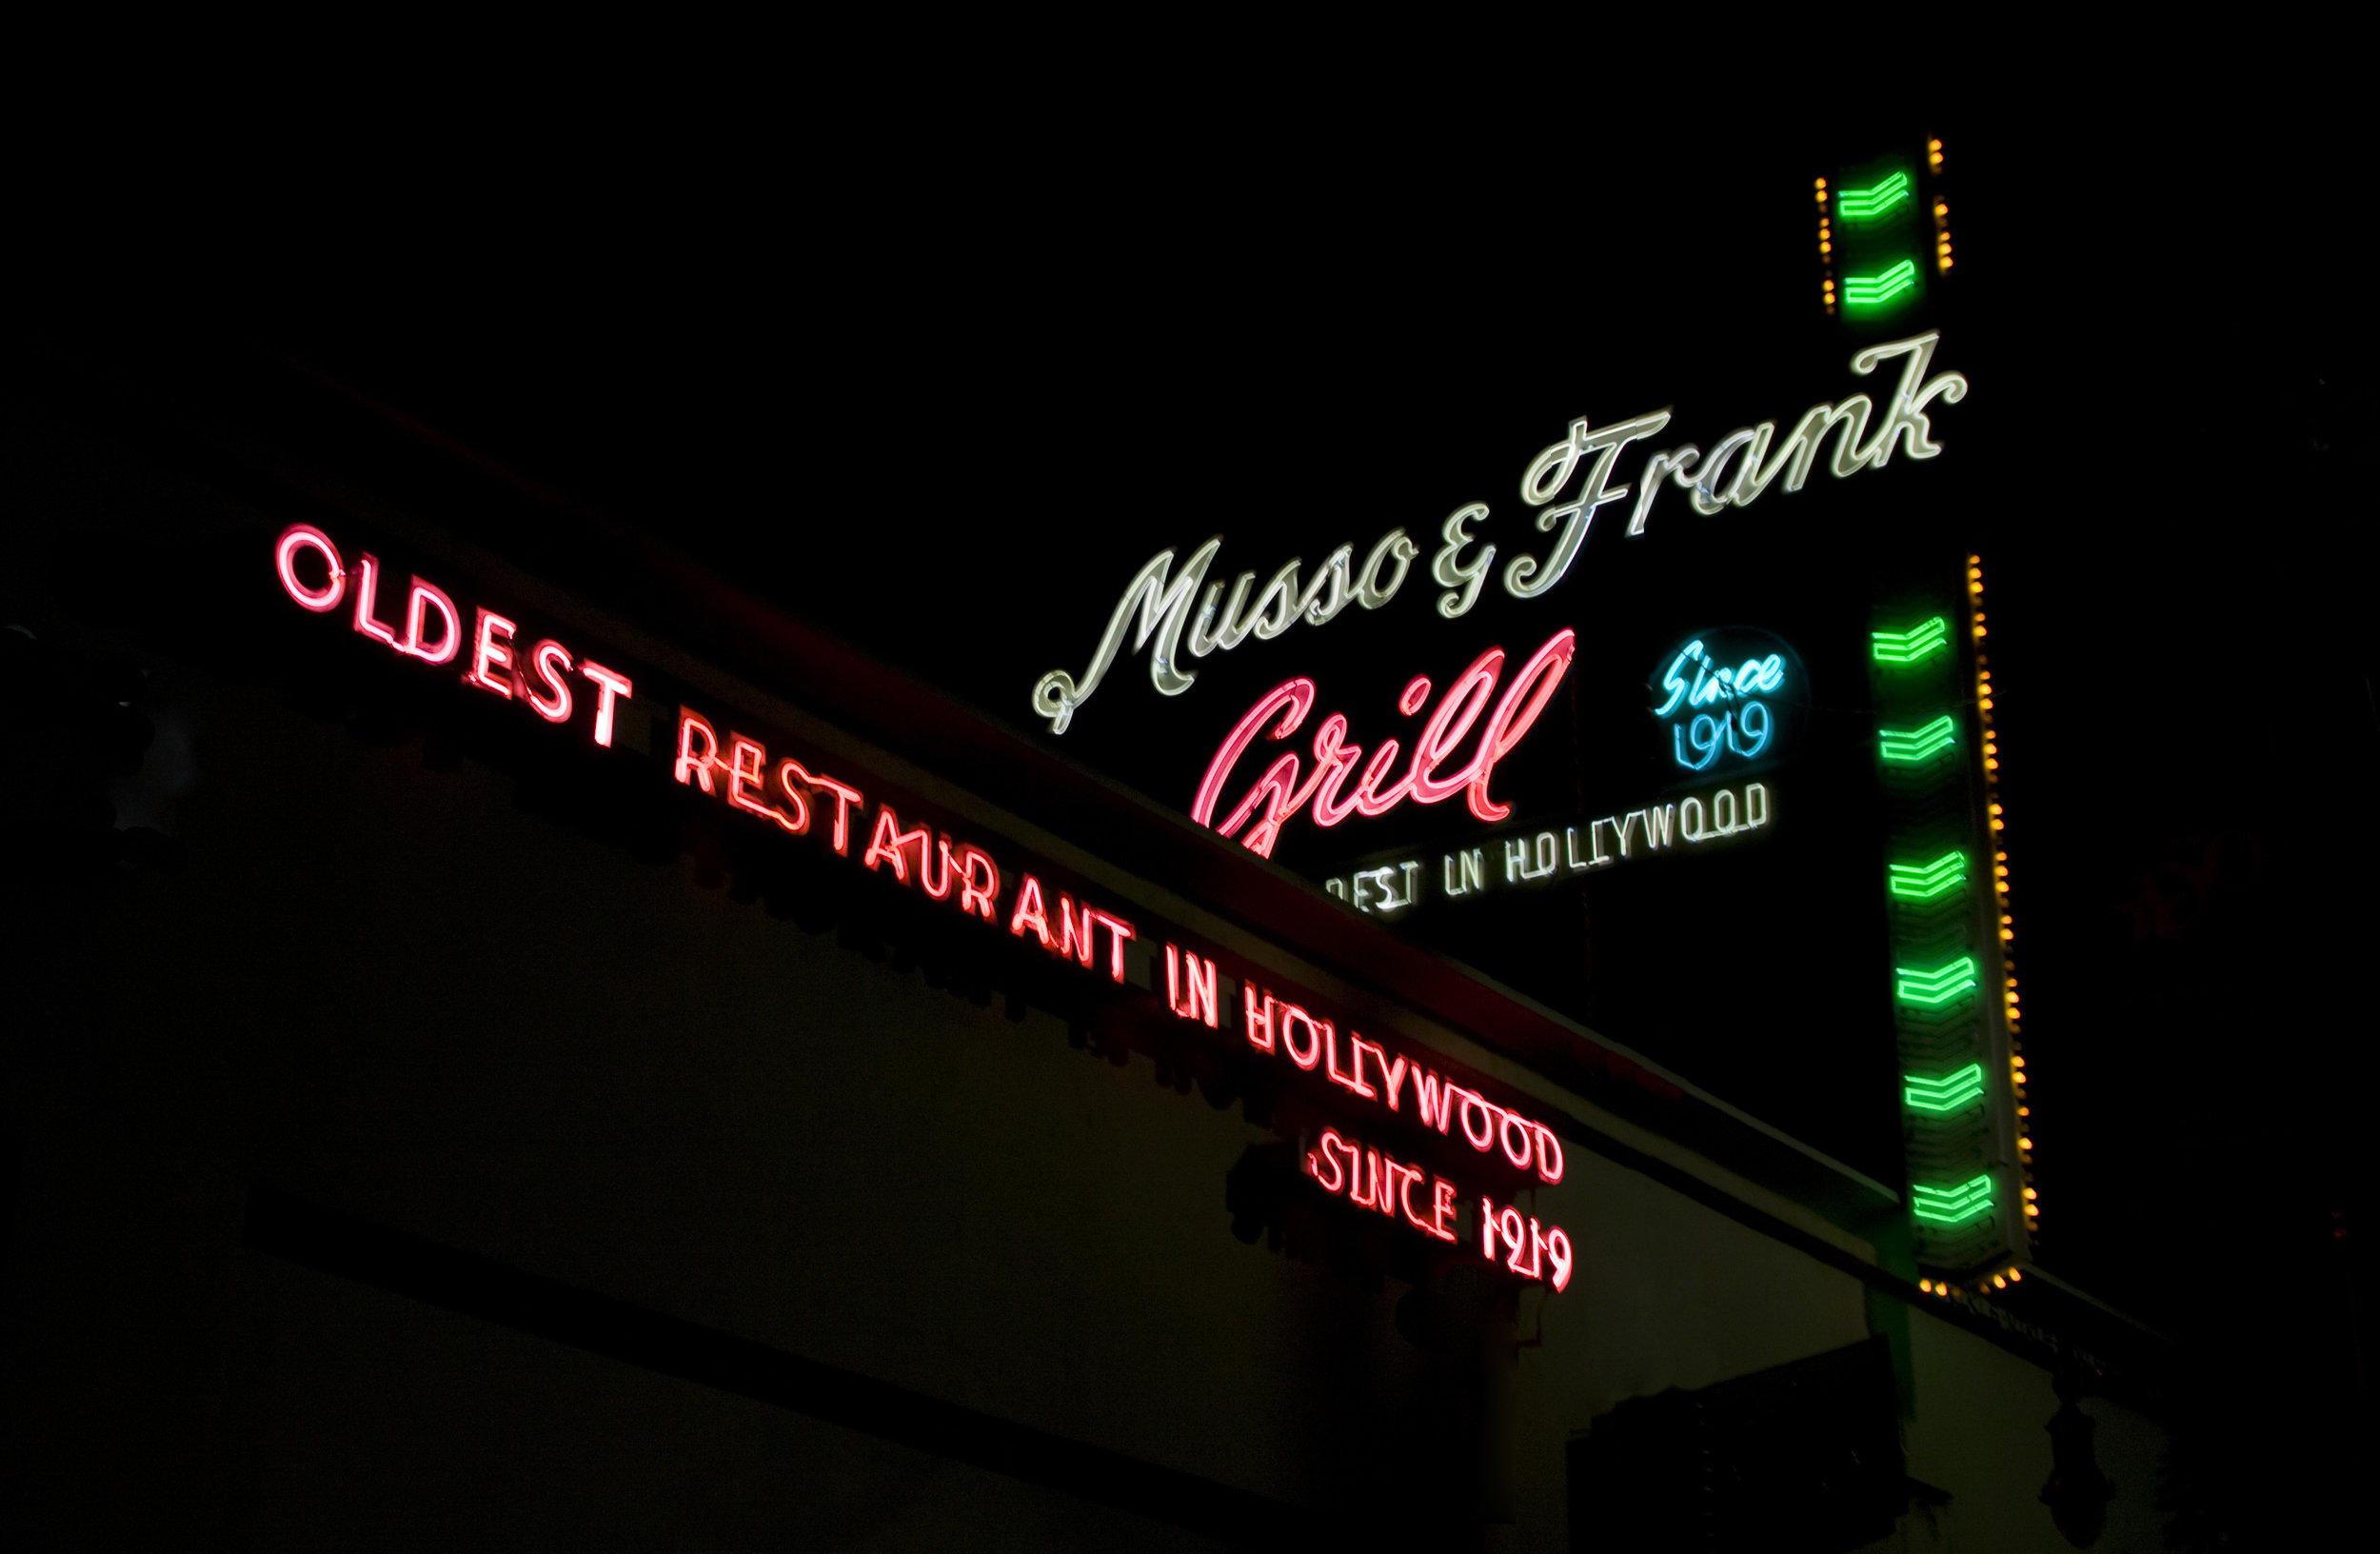 Musso & Frank's Grill